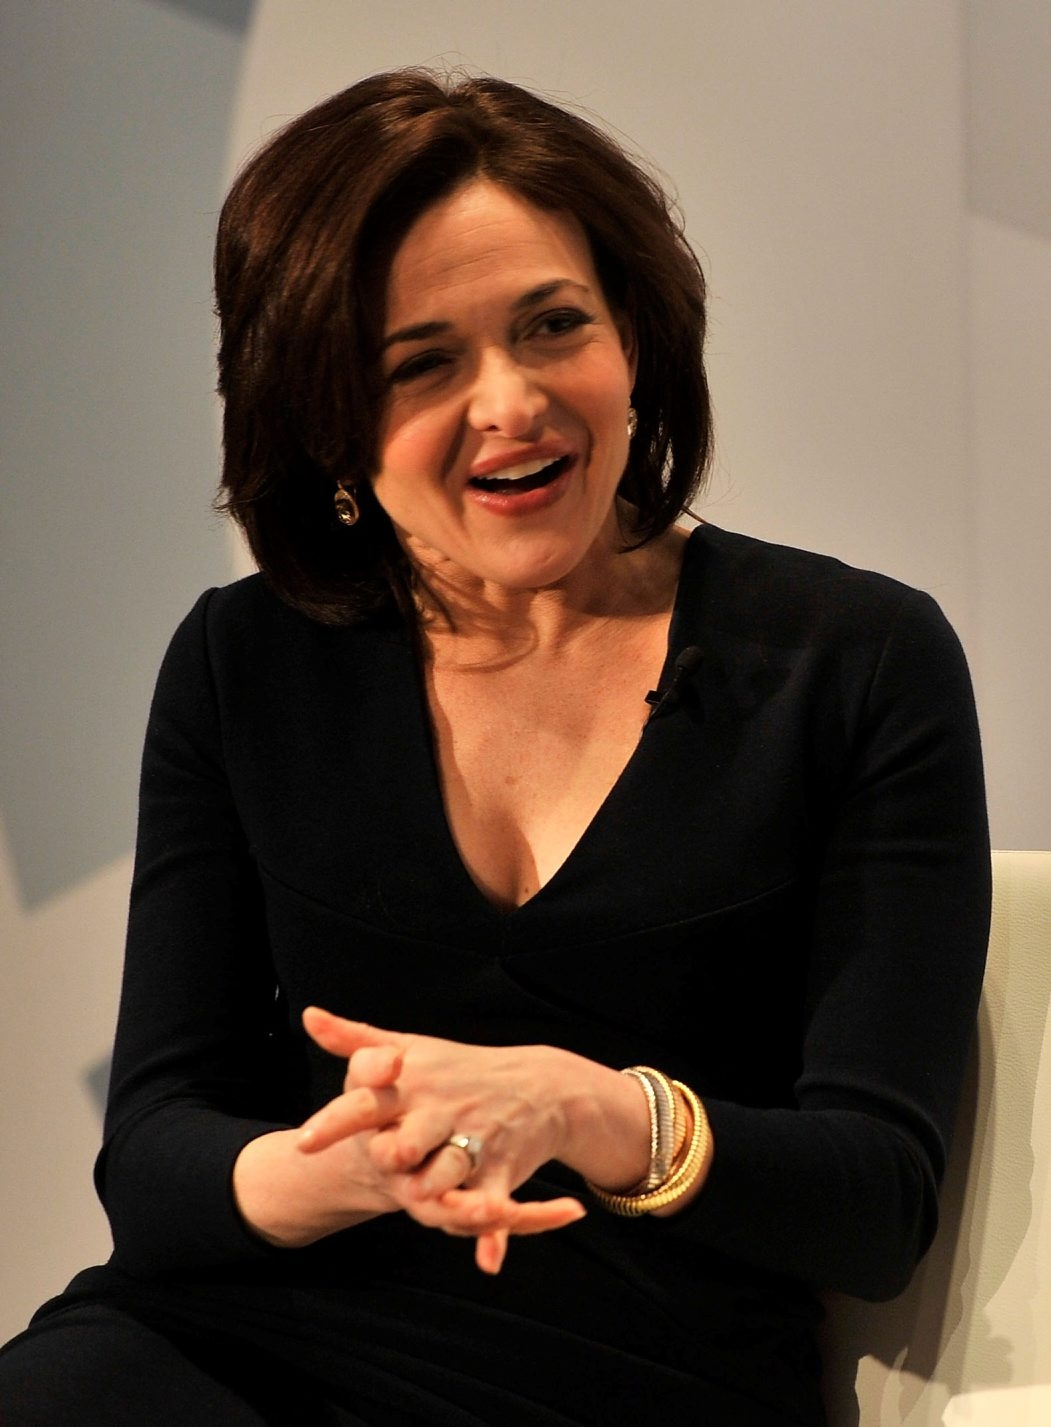 Sheryl Sandberg addresses the dearth of women in leadership posts.